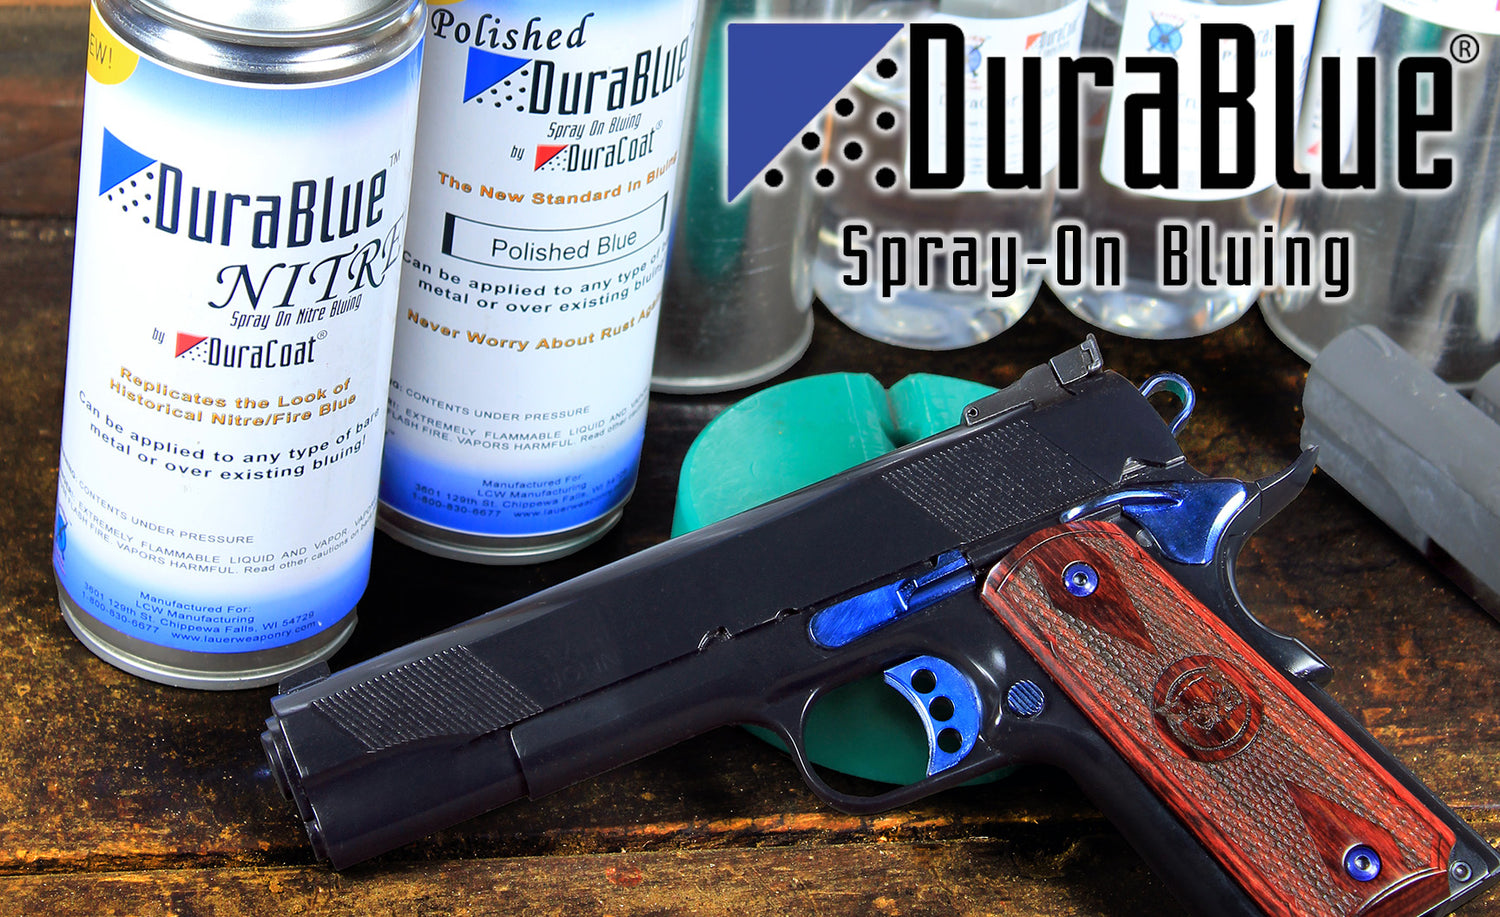 DuraBlue Spray-On Bluing by DuraCoat